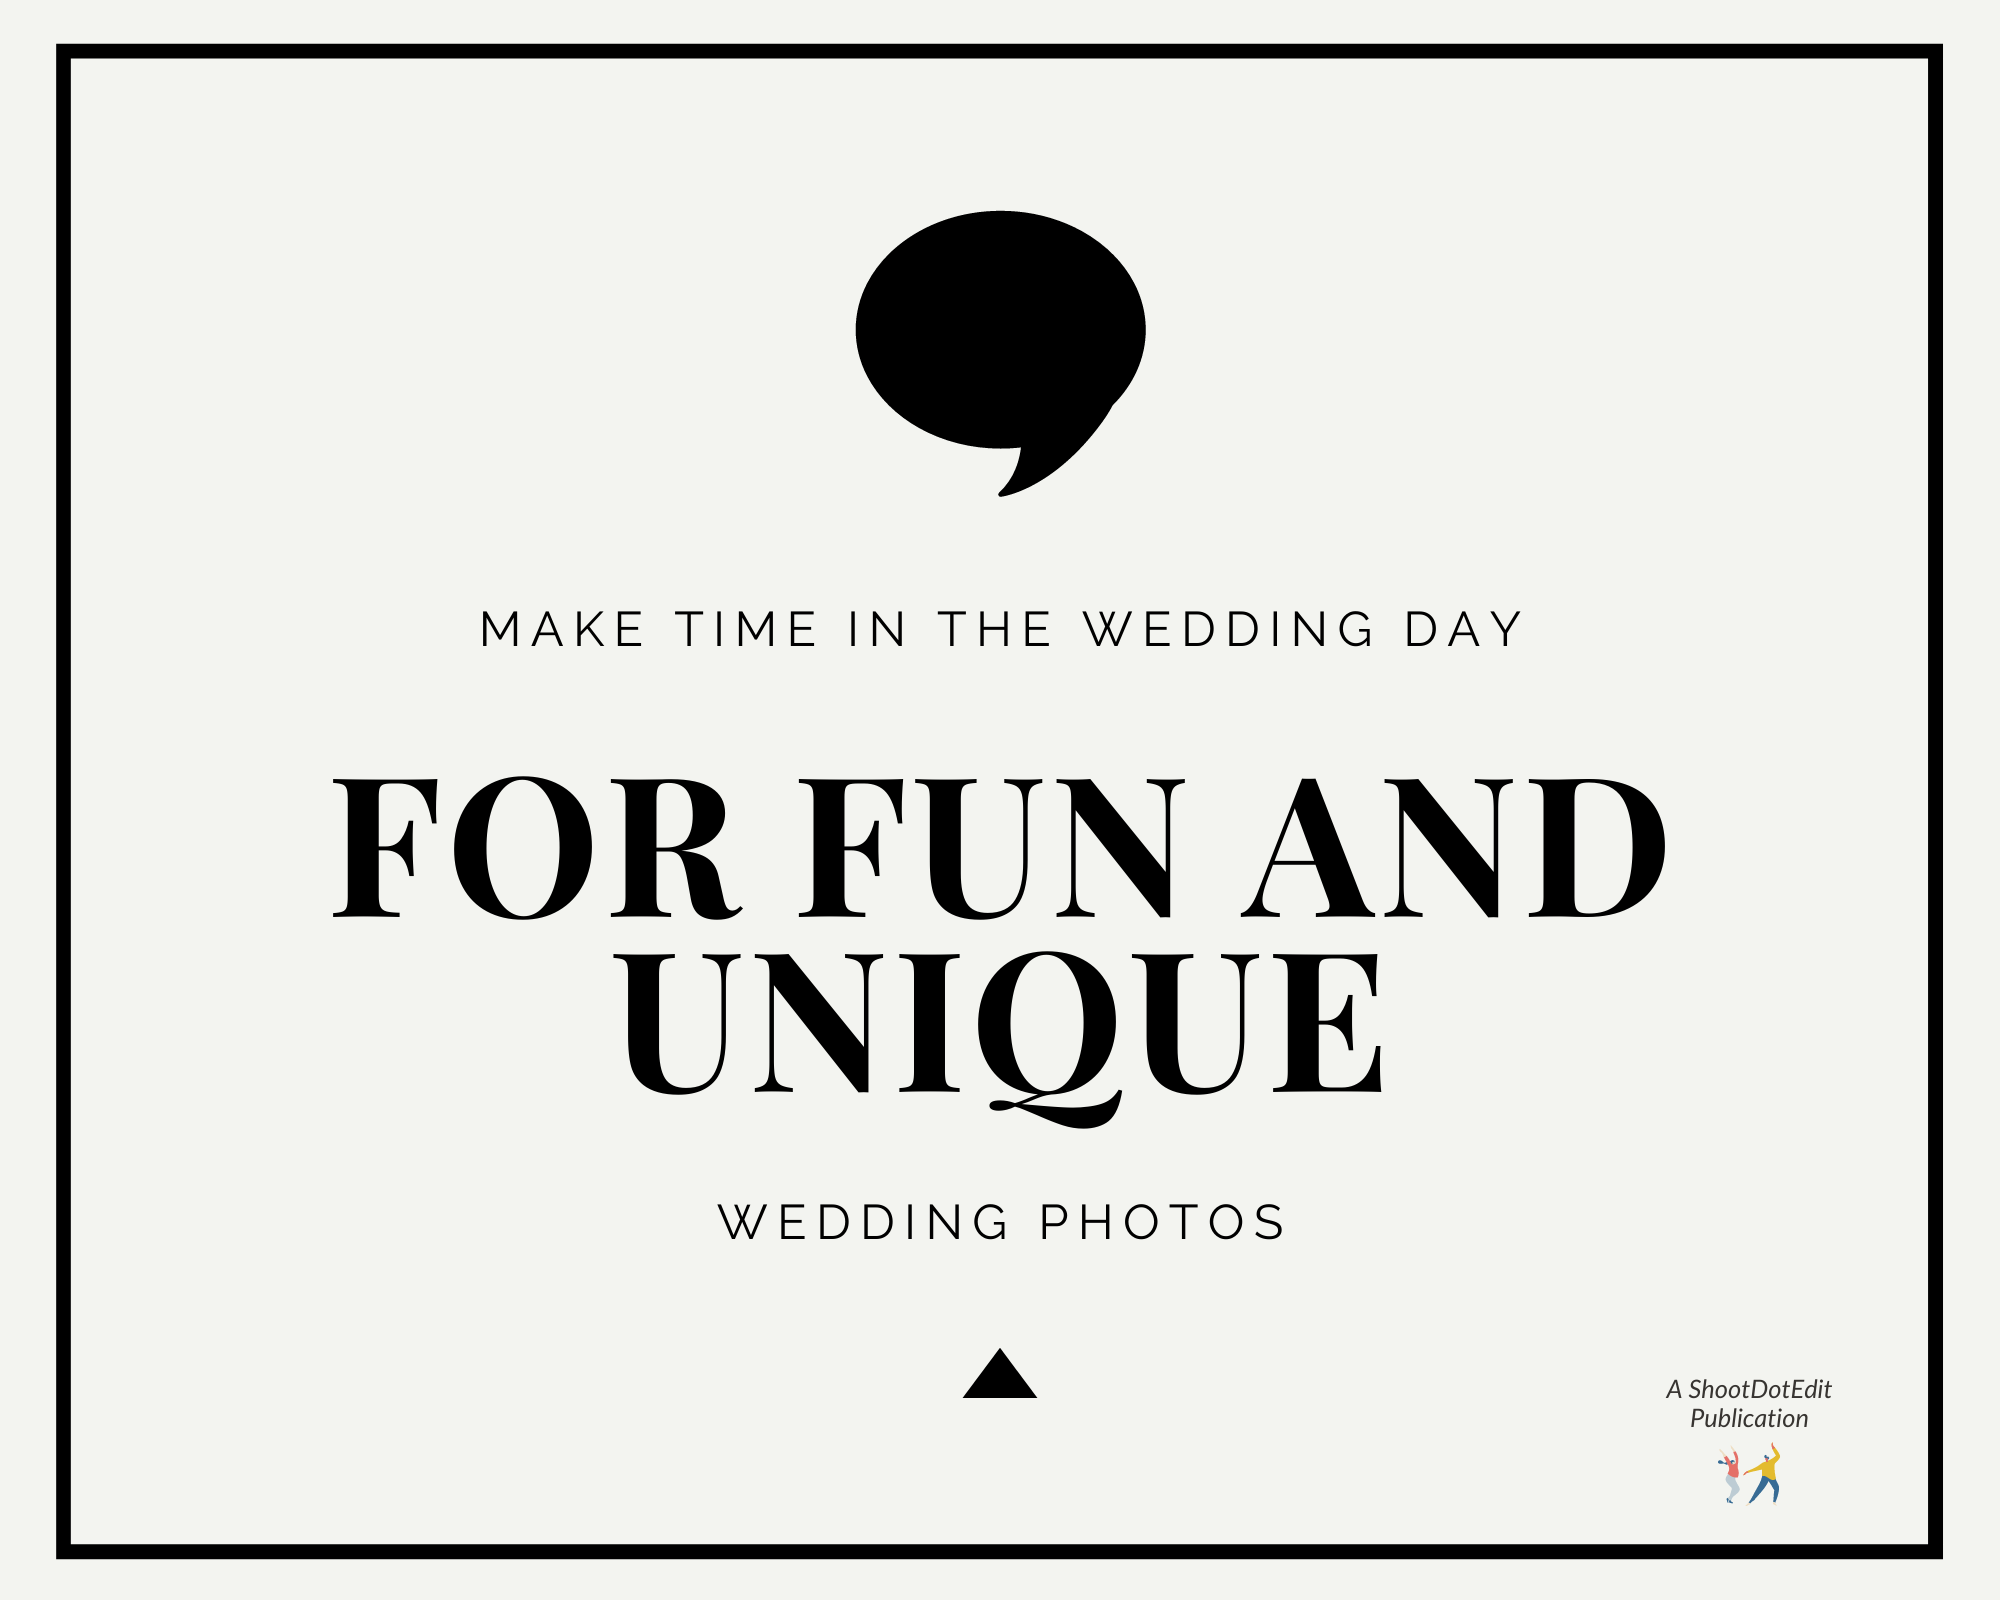 Infographic stating make time in the wedding day for fun and unique wedding photos